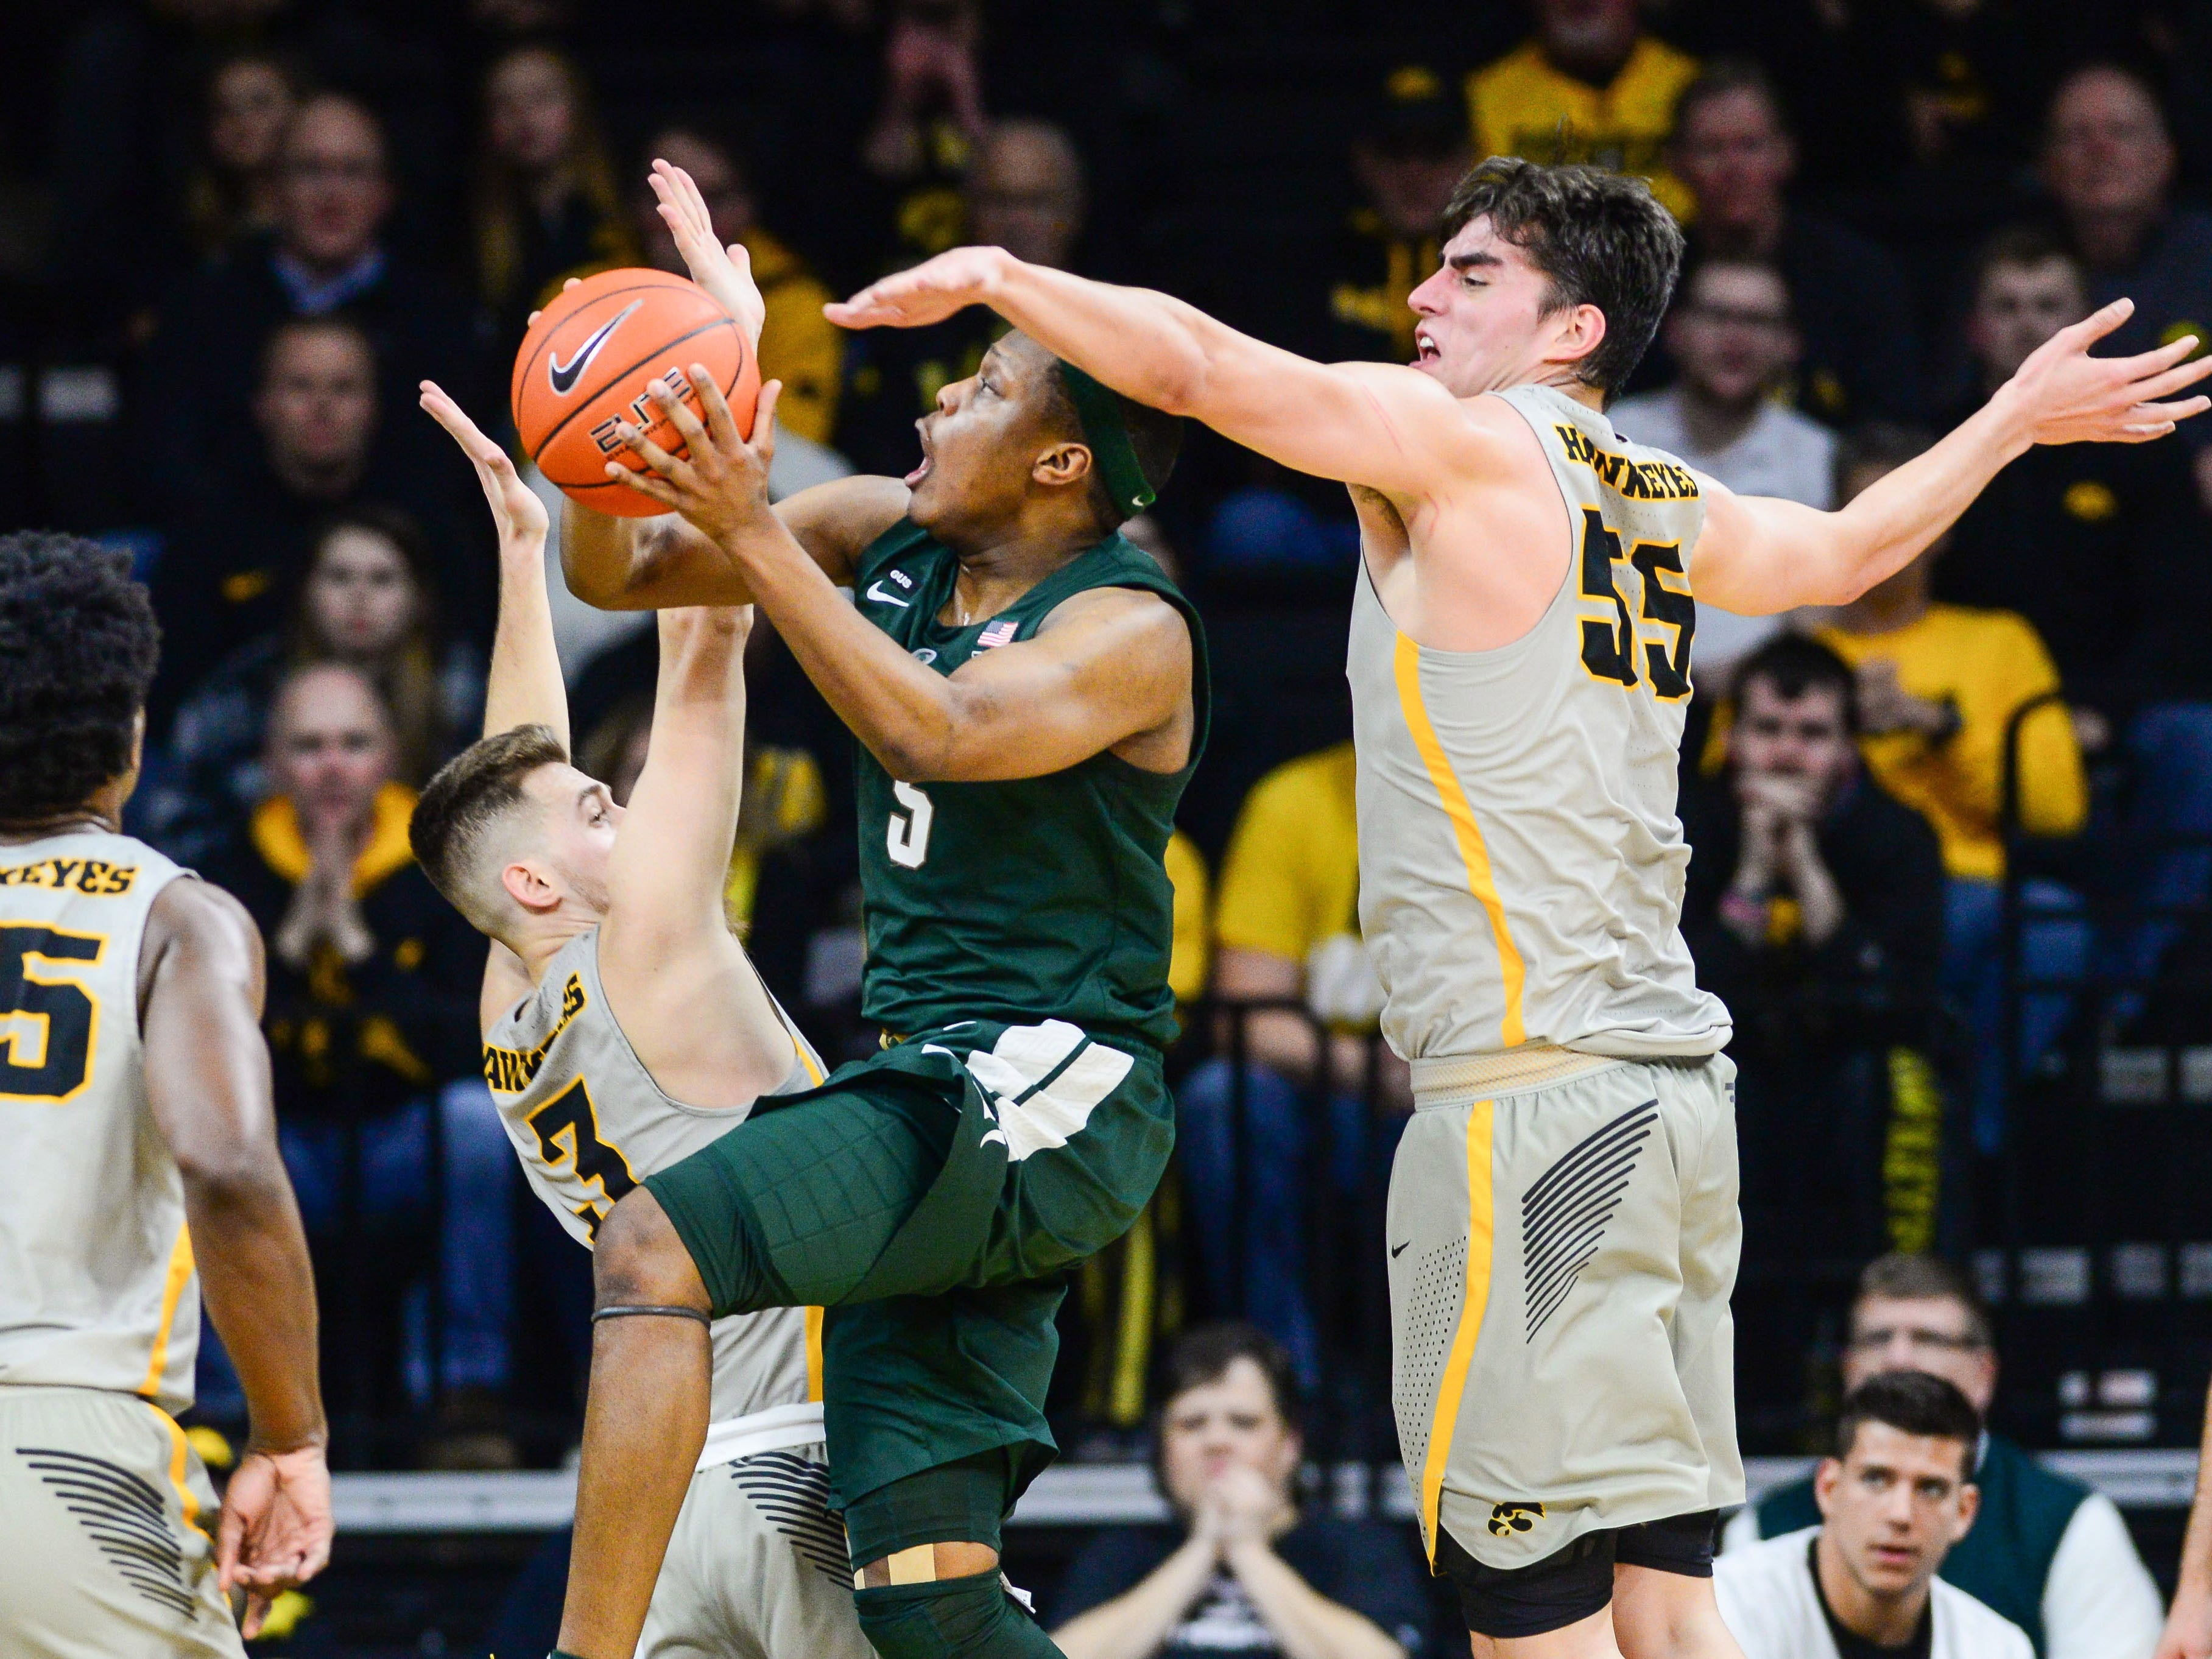 Iowa Hawkeyes forward Luka Garza (55) and guard Jordan Bohannon (3) and forward Tyler Cook (25) defend the shot by Michigan State Spartans guard Cassius Winston (5) during the first half at Carver-Hawkeye Arena.